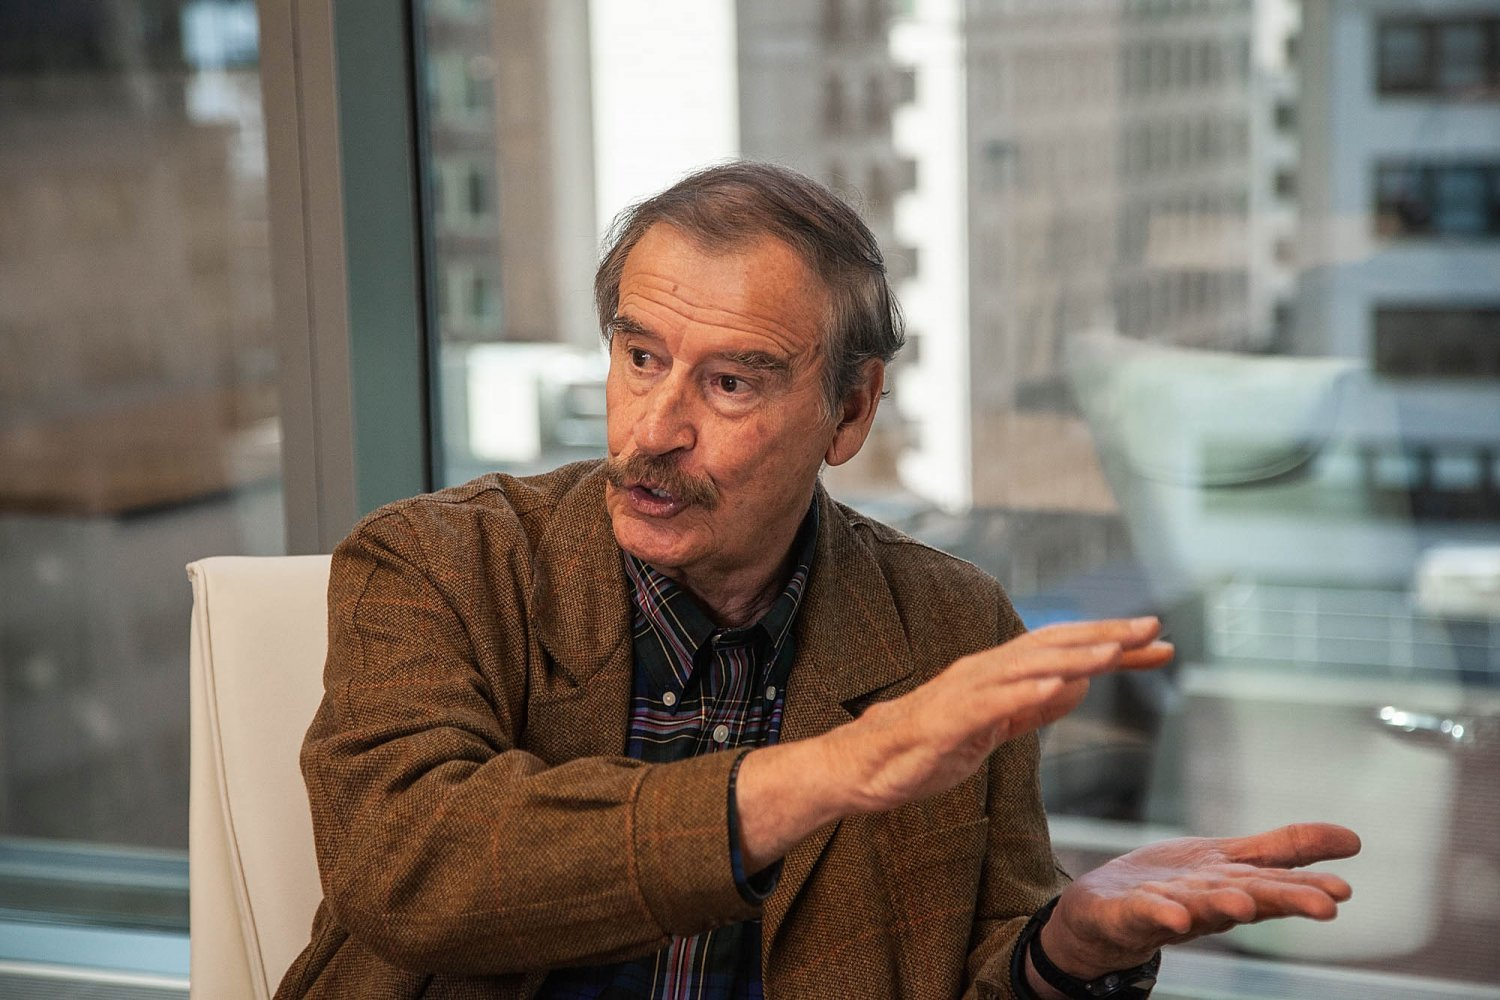 Video exclusive: Vicente Fox on Khiron Life Sciences, ethical leadership, and the rise of the Mexican cannabis industry